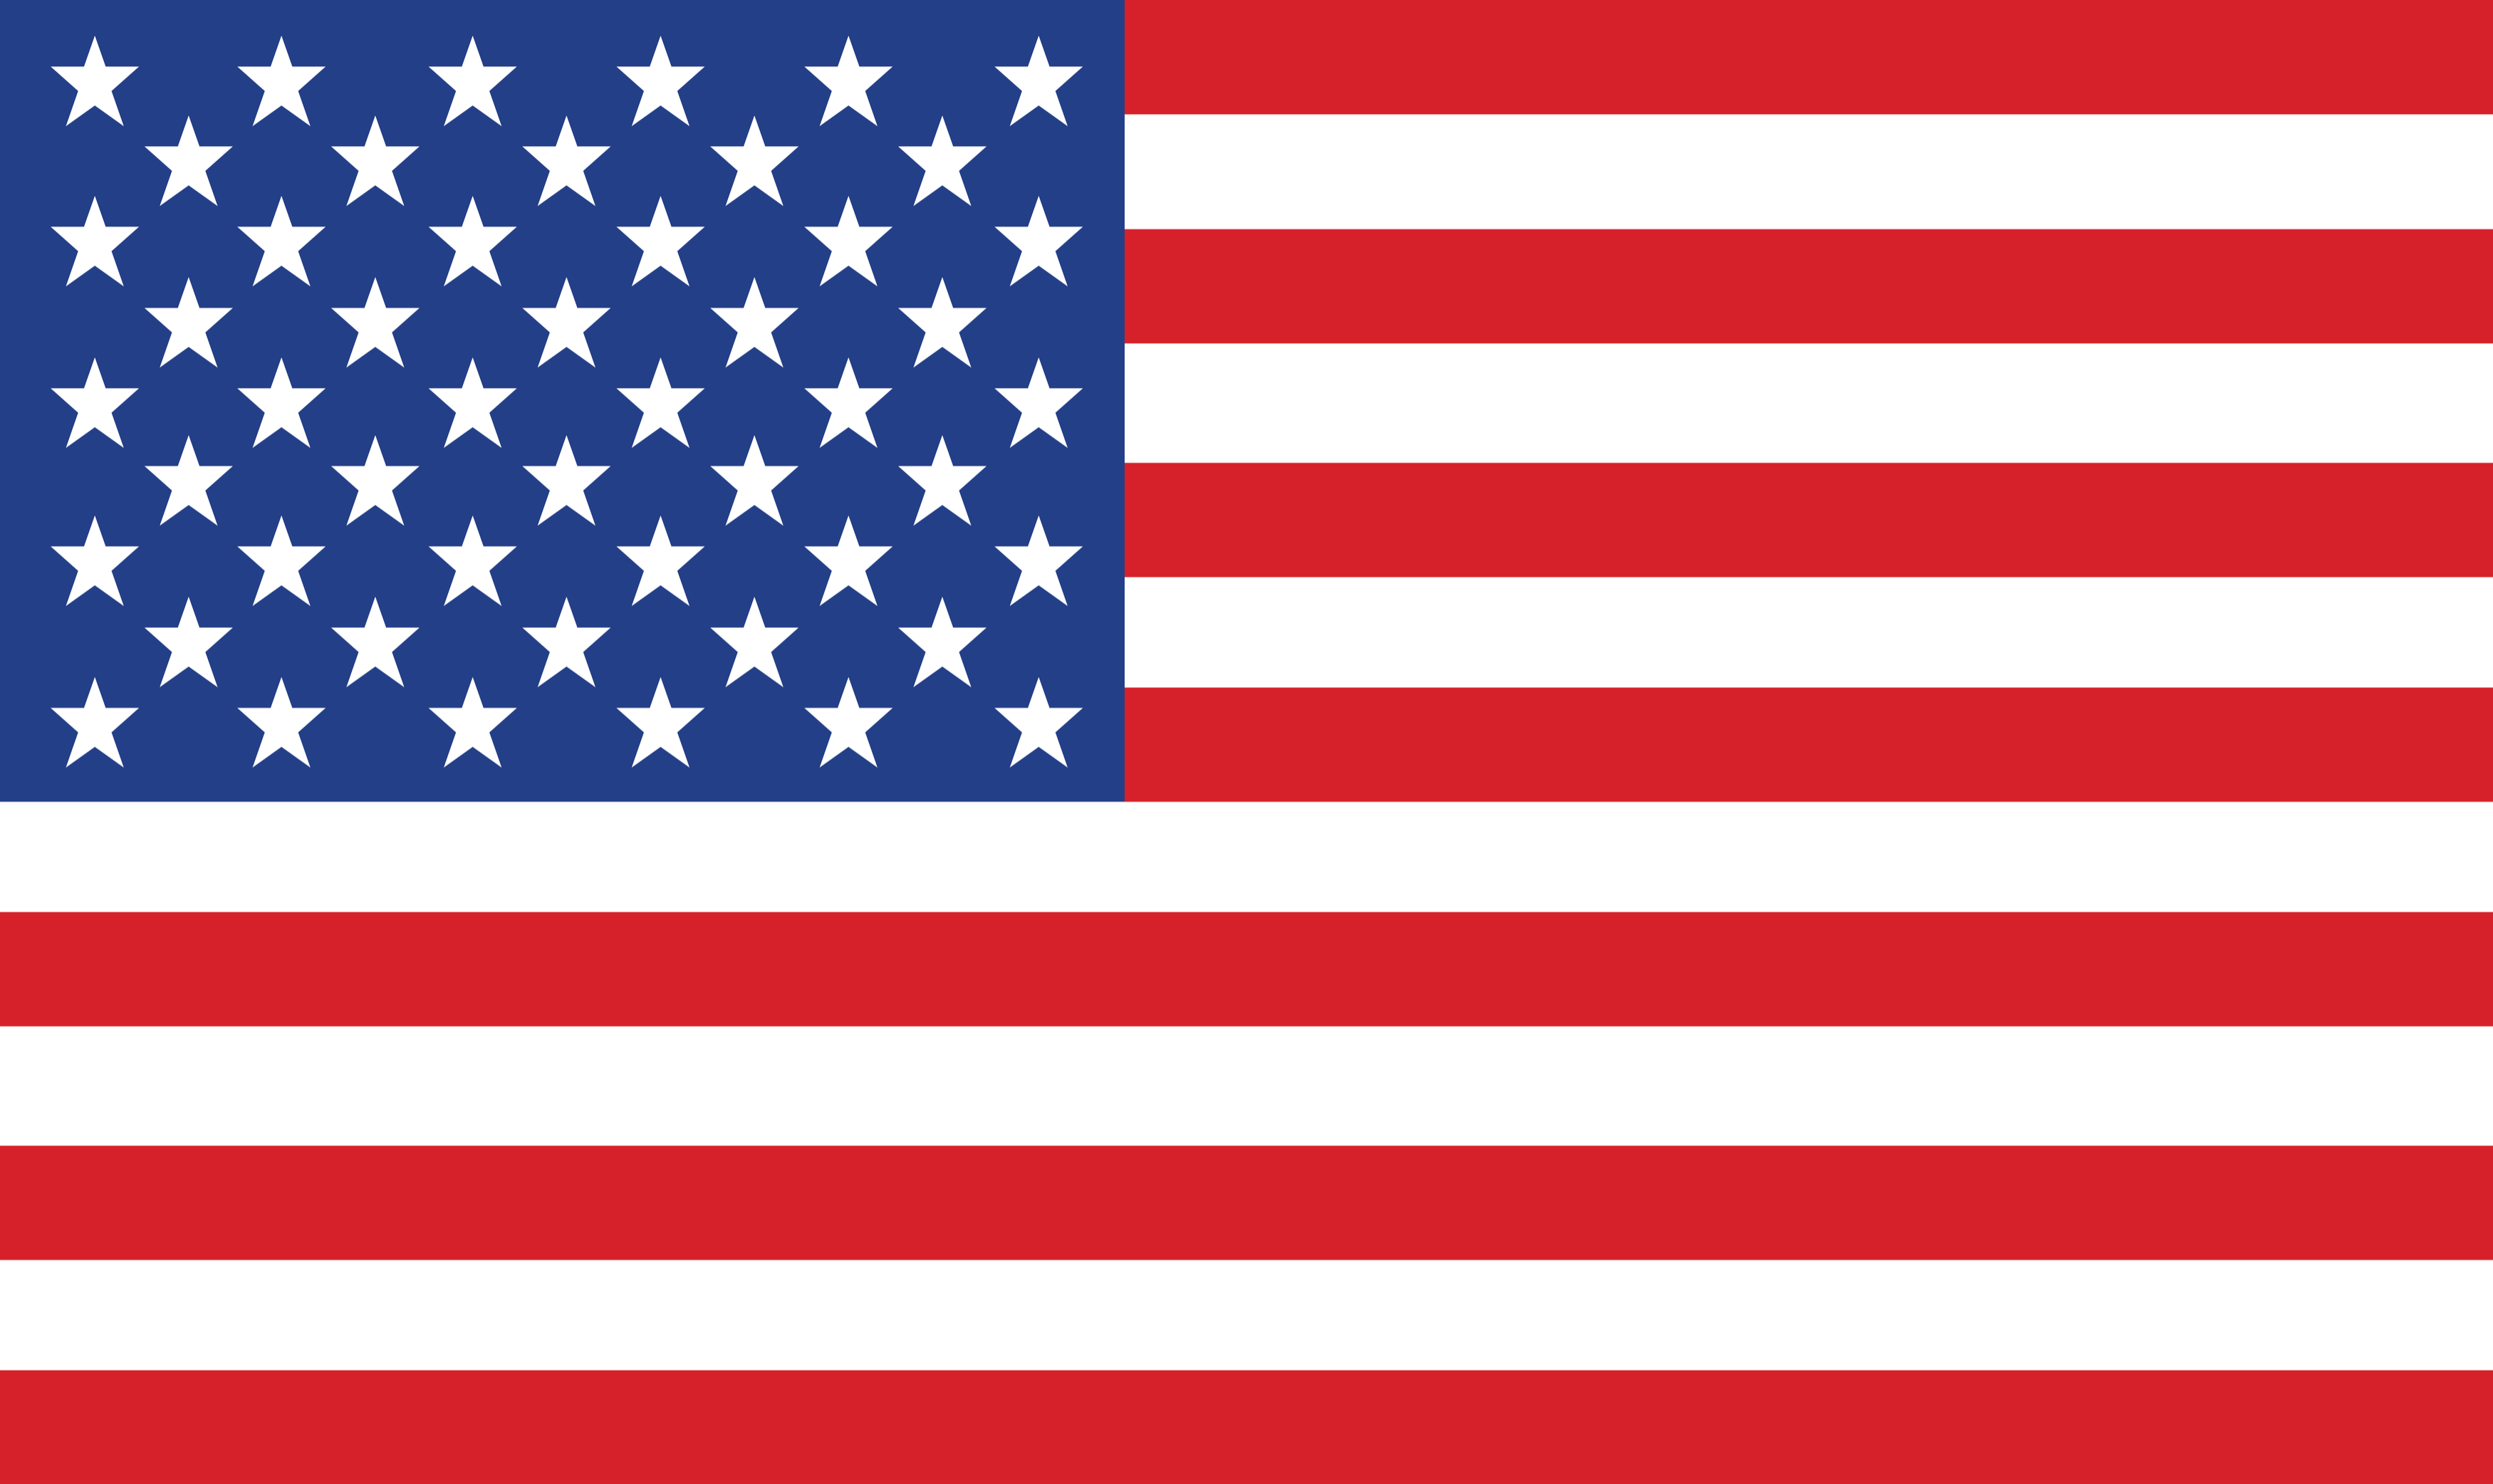 Red, Blue, and White: What Do The Colors Of The American Flag Mean?